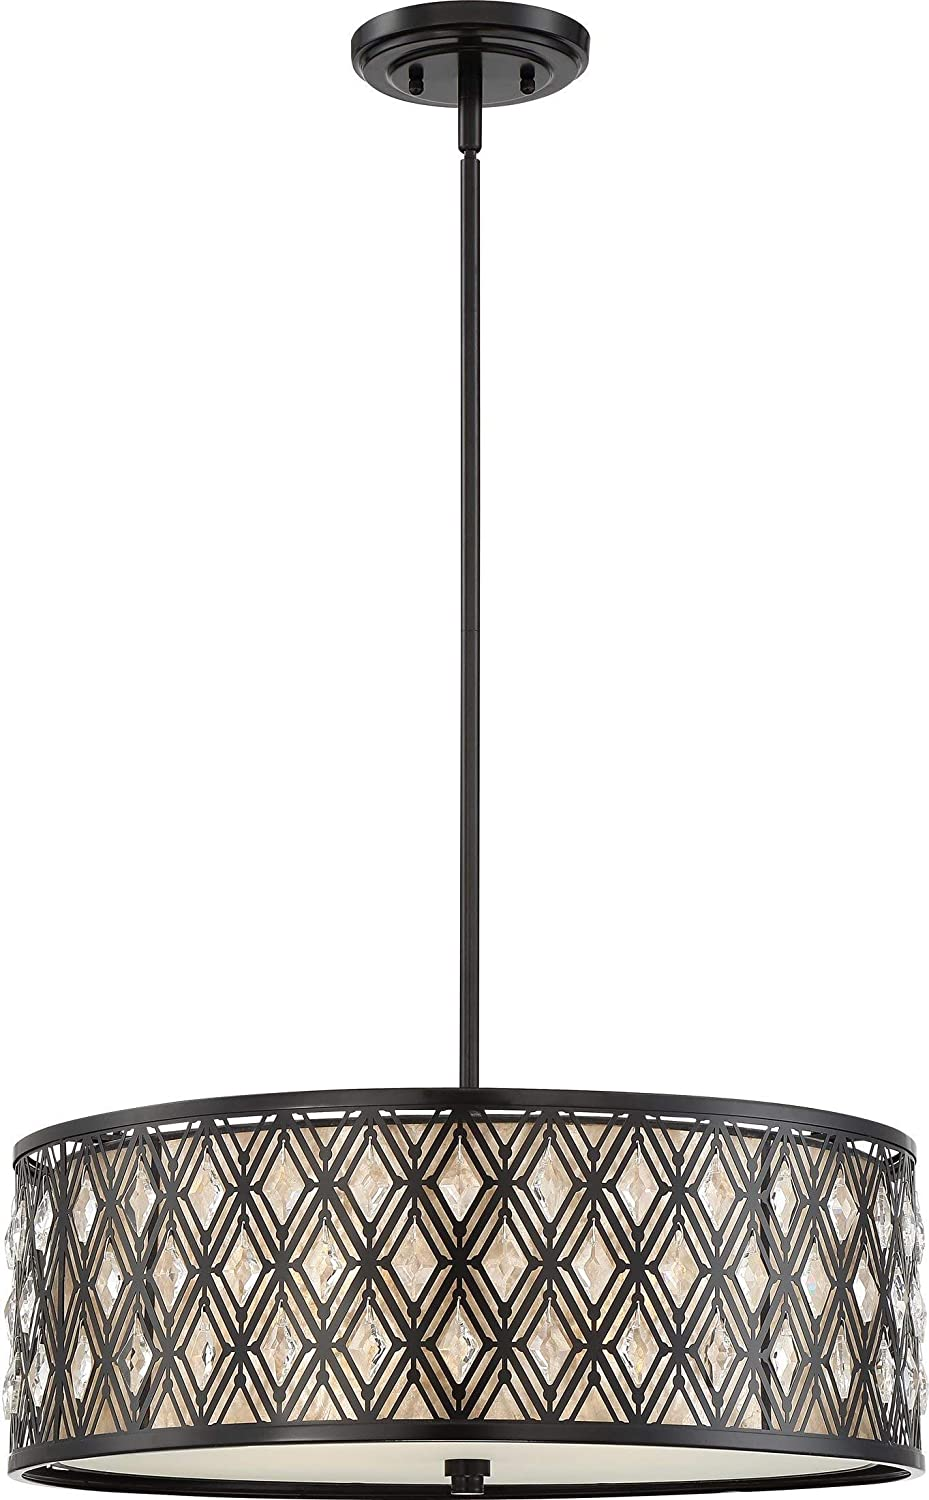 Quoizel TF6898M Grove Park Tiffany Table Lamp, 2-Light, 120 Watts, Iron with Wood Accents (24 H x 14 W)